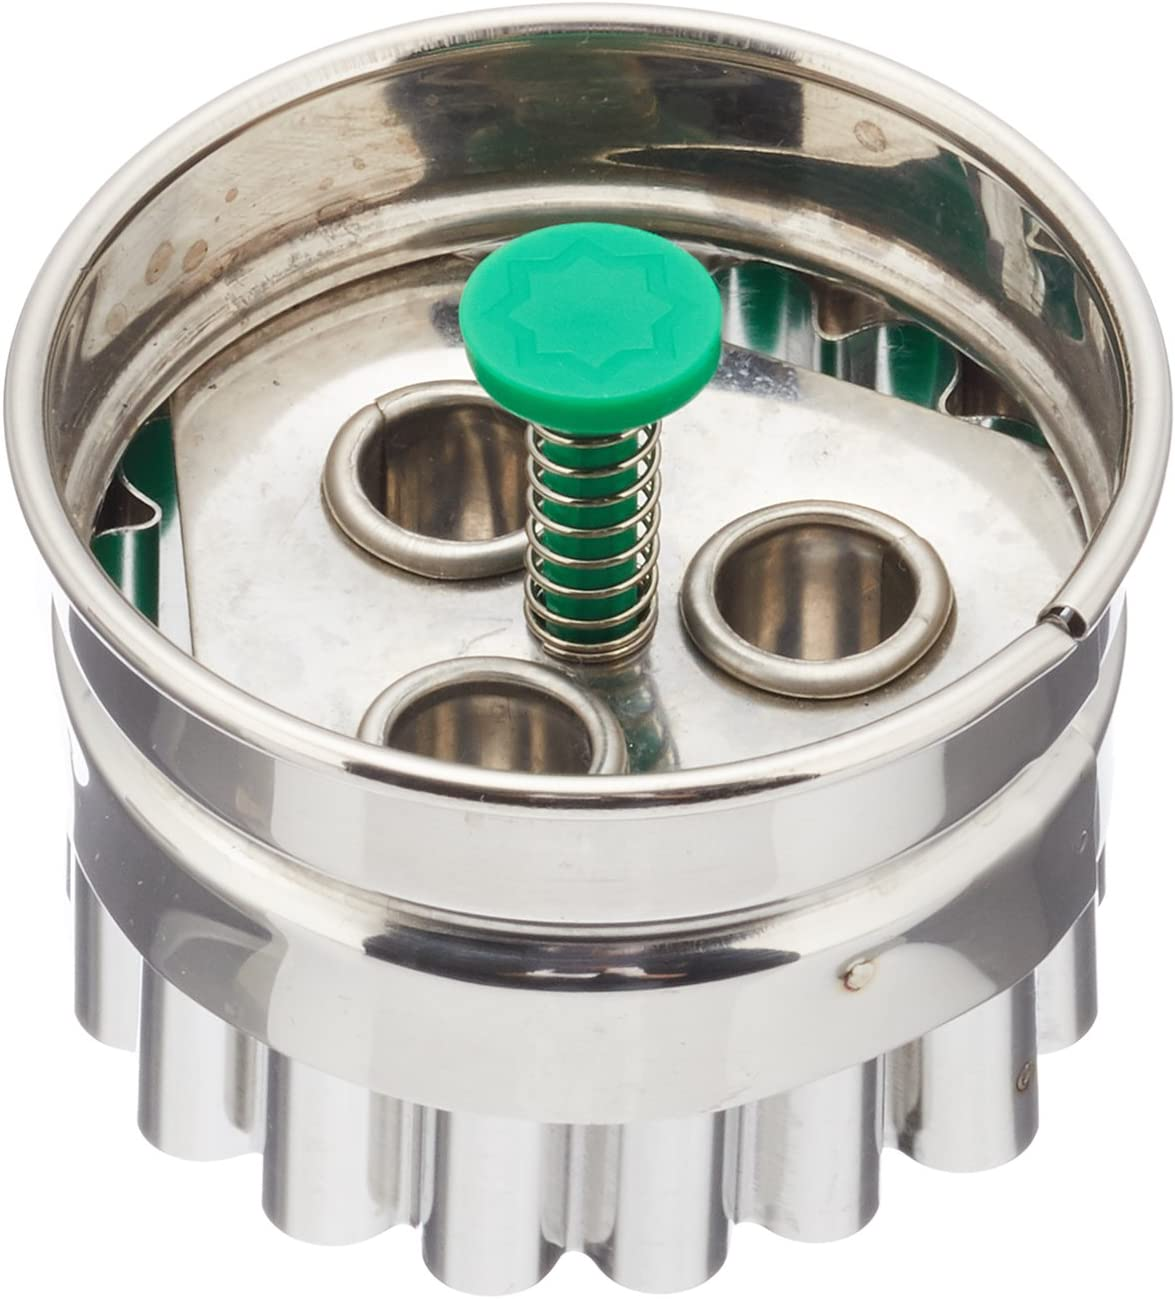 Staedter Linzer 3-Hole Cookie Cutter with Ejector, Stainless Steel, Multi-Colour, 30 x 4.8 x 30 cm